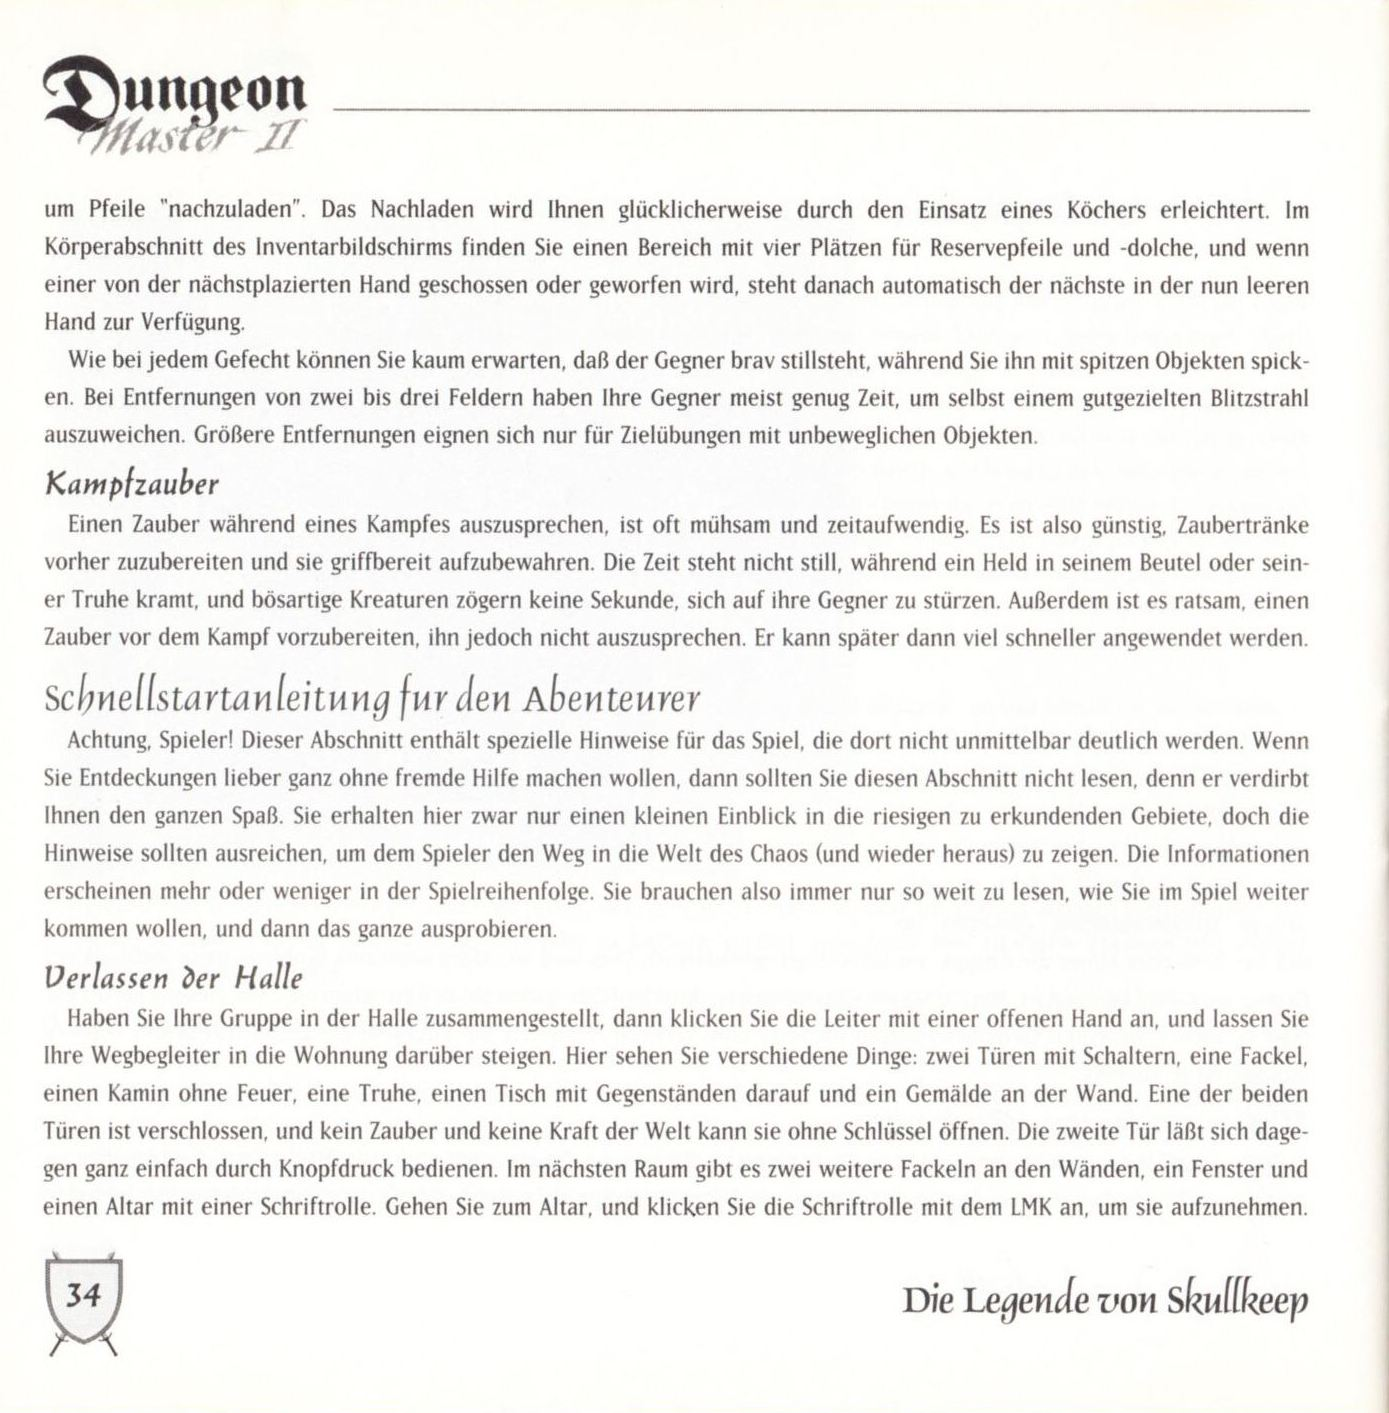 Game - Dungeon Master II - DE - PC - Blackmarket With Booklet - Booklet - Page 036 - Scan